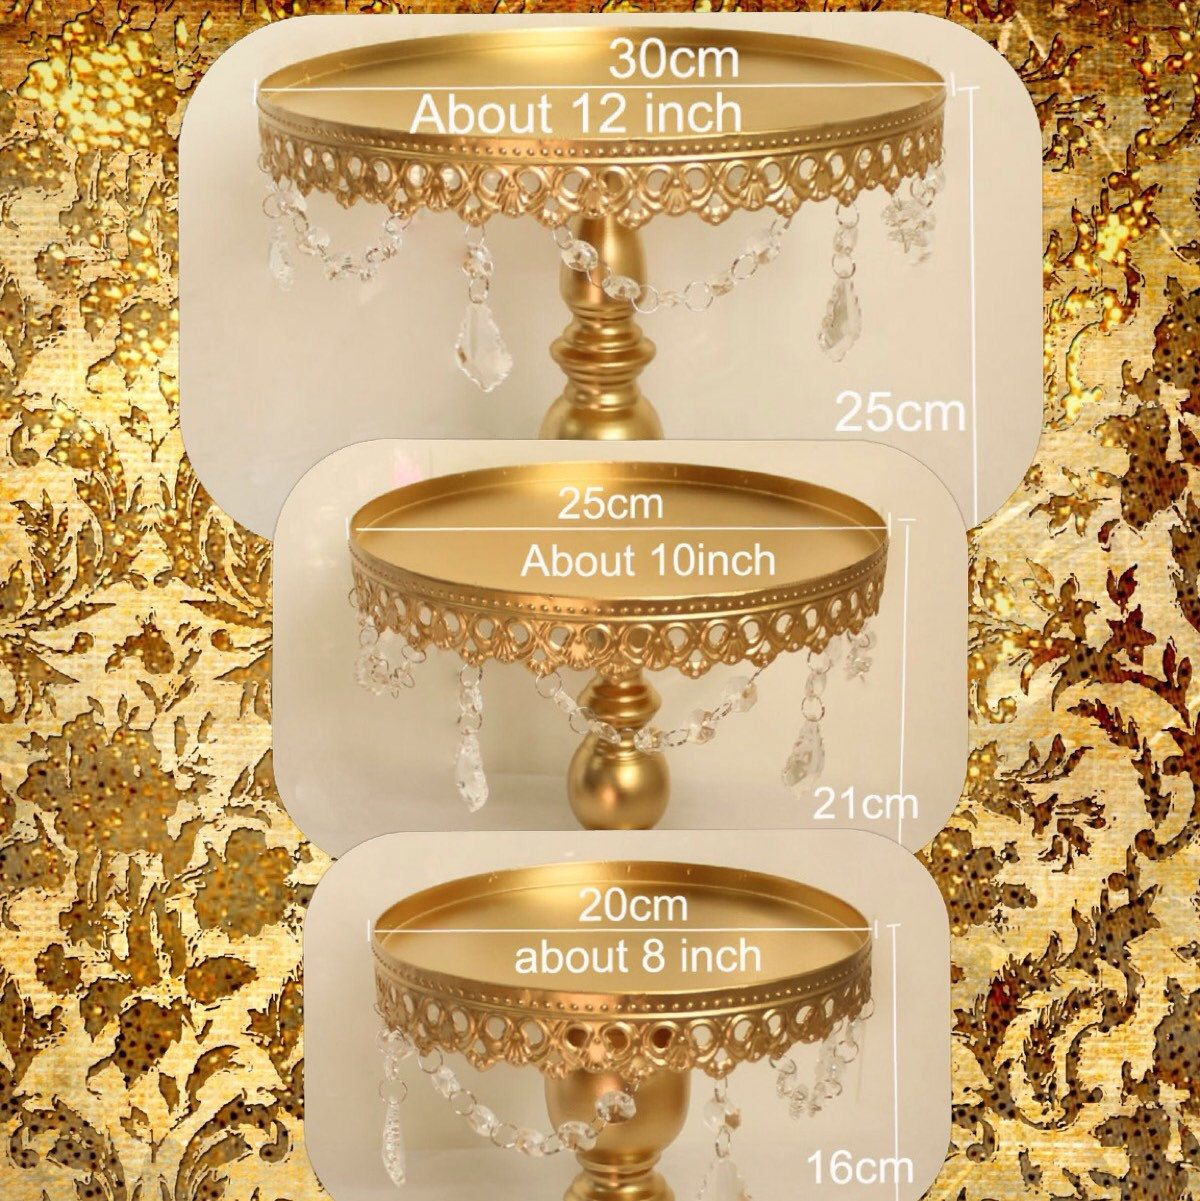 New Arrival 3 Pieces Cake Stands In Gold 3 Different Sizes In This Set.  Perfect